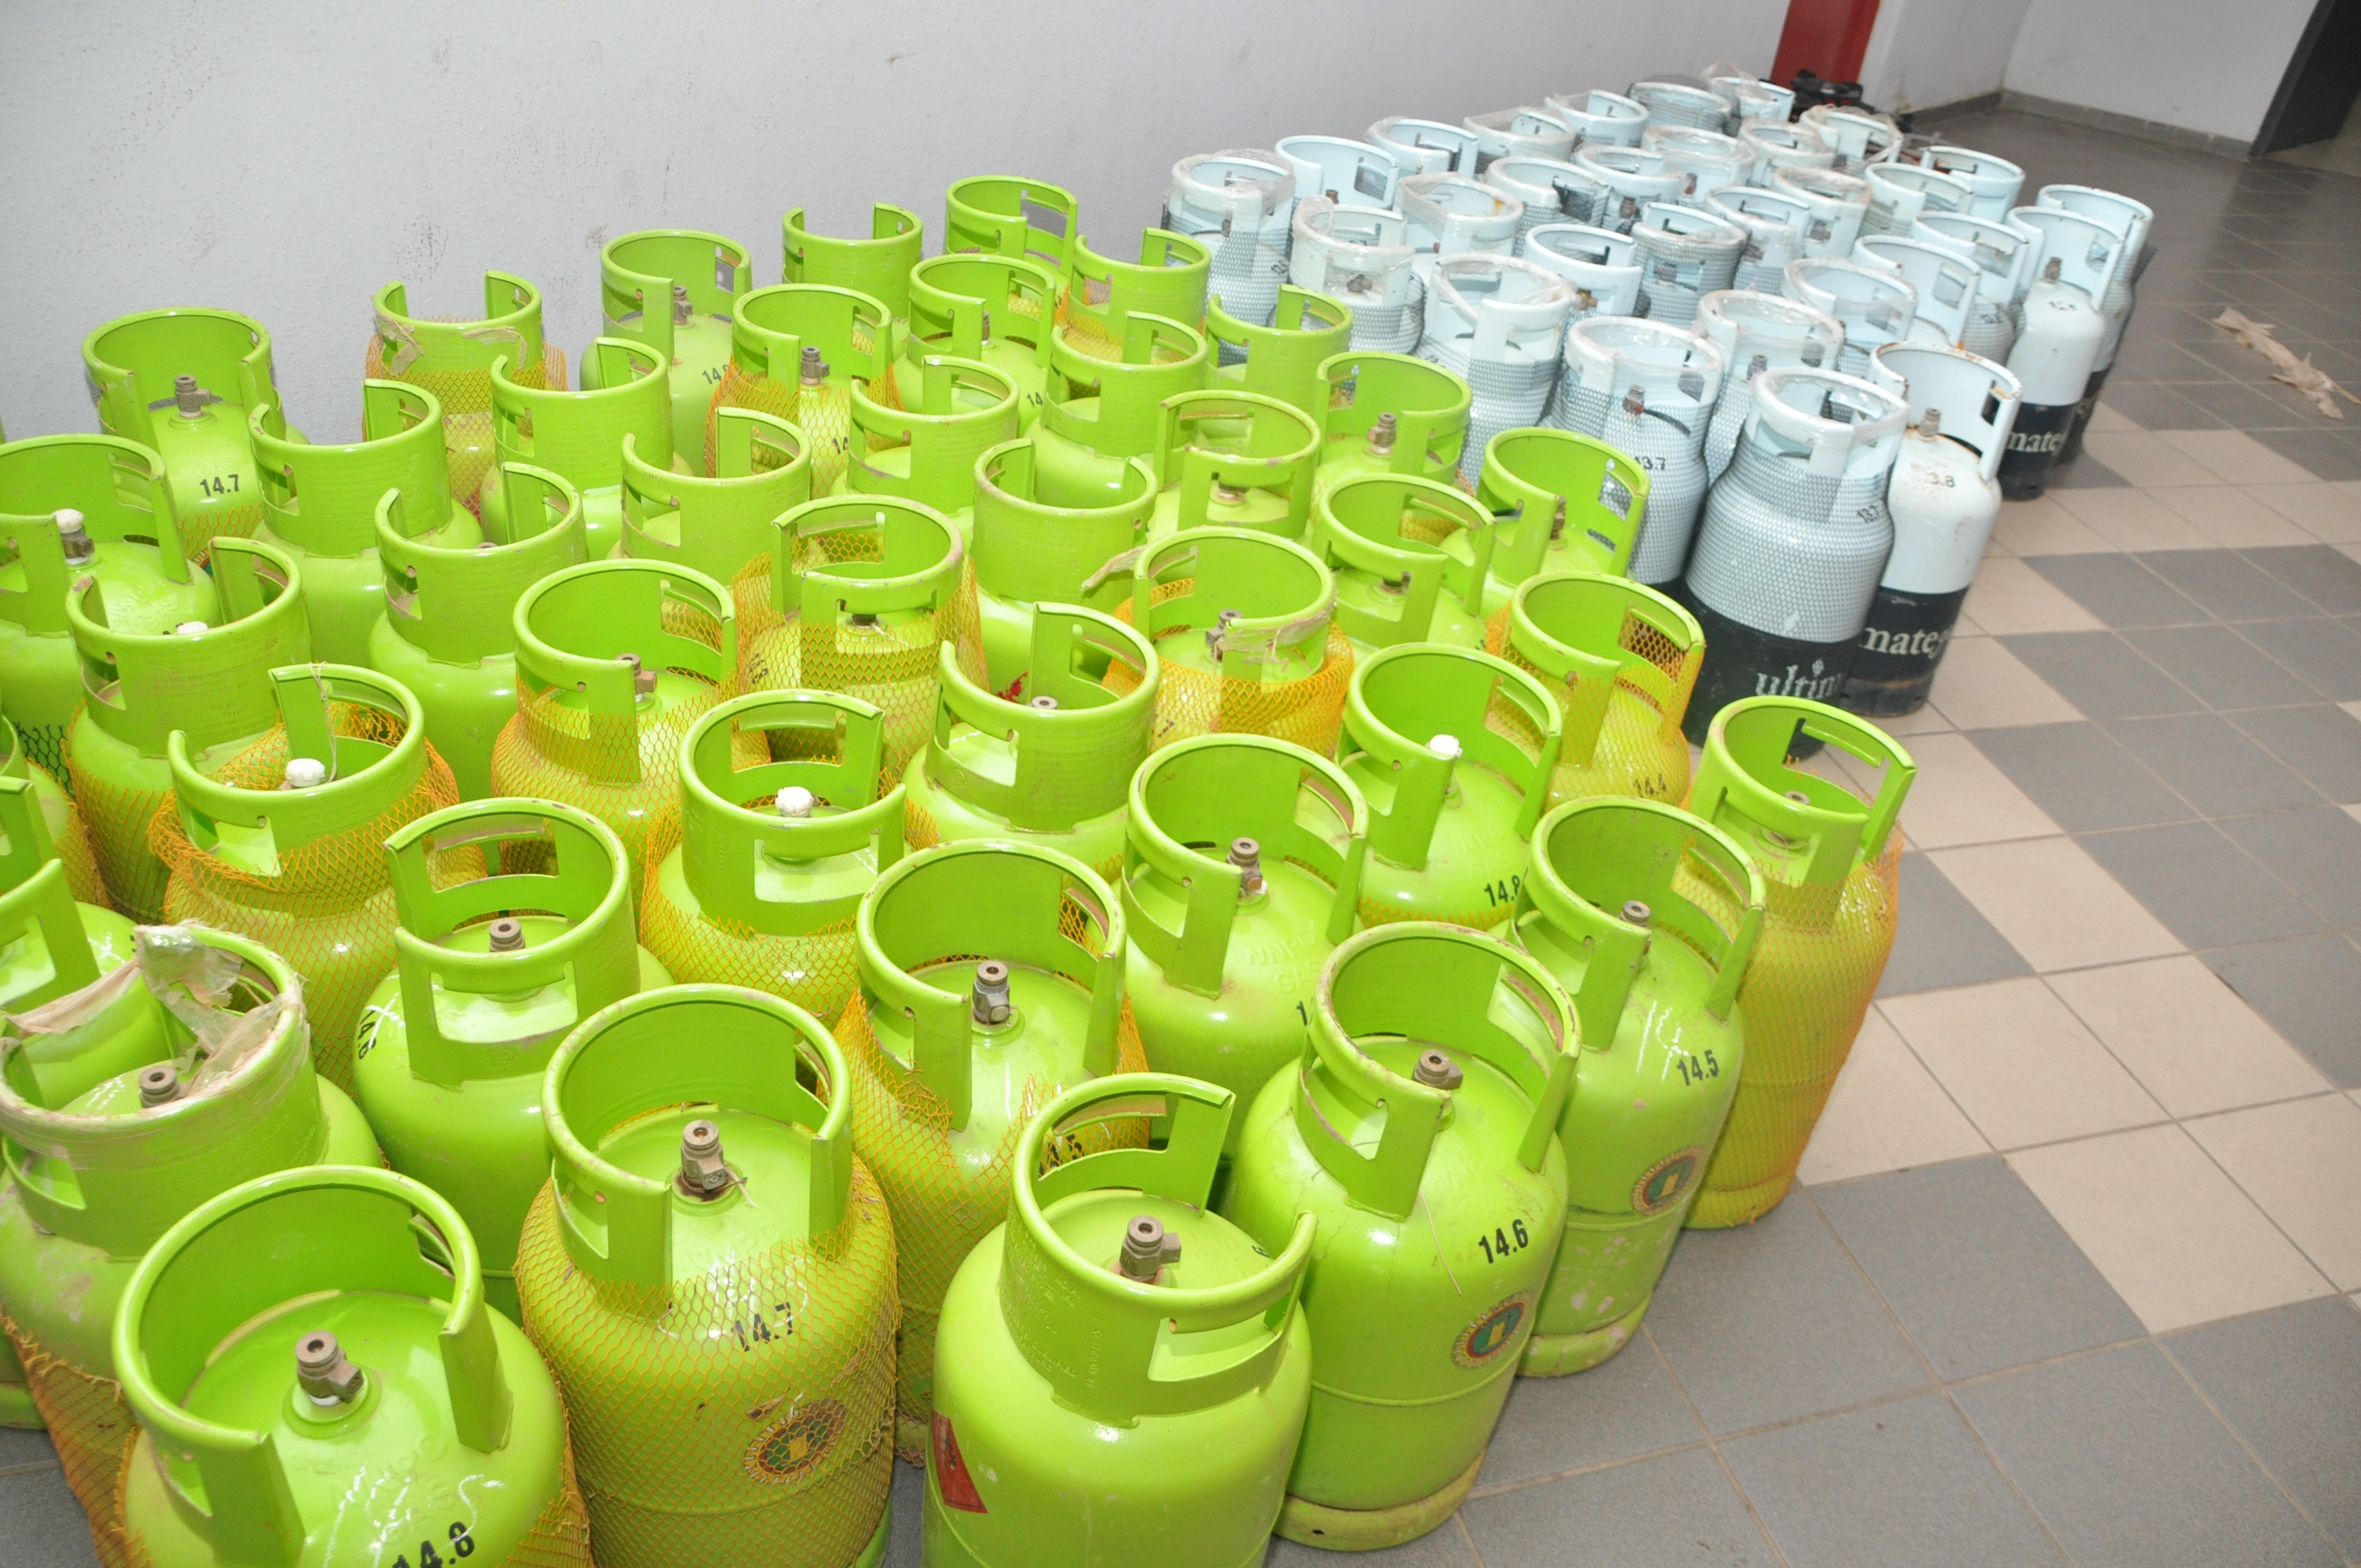 4TH GTHI MAMPUT LPG EMPOWERMENT IN ABUJA